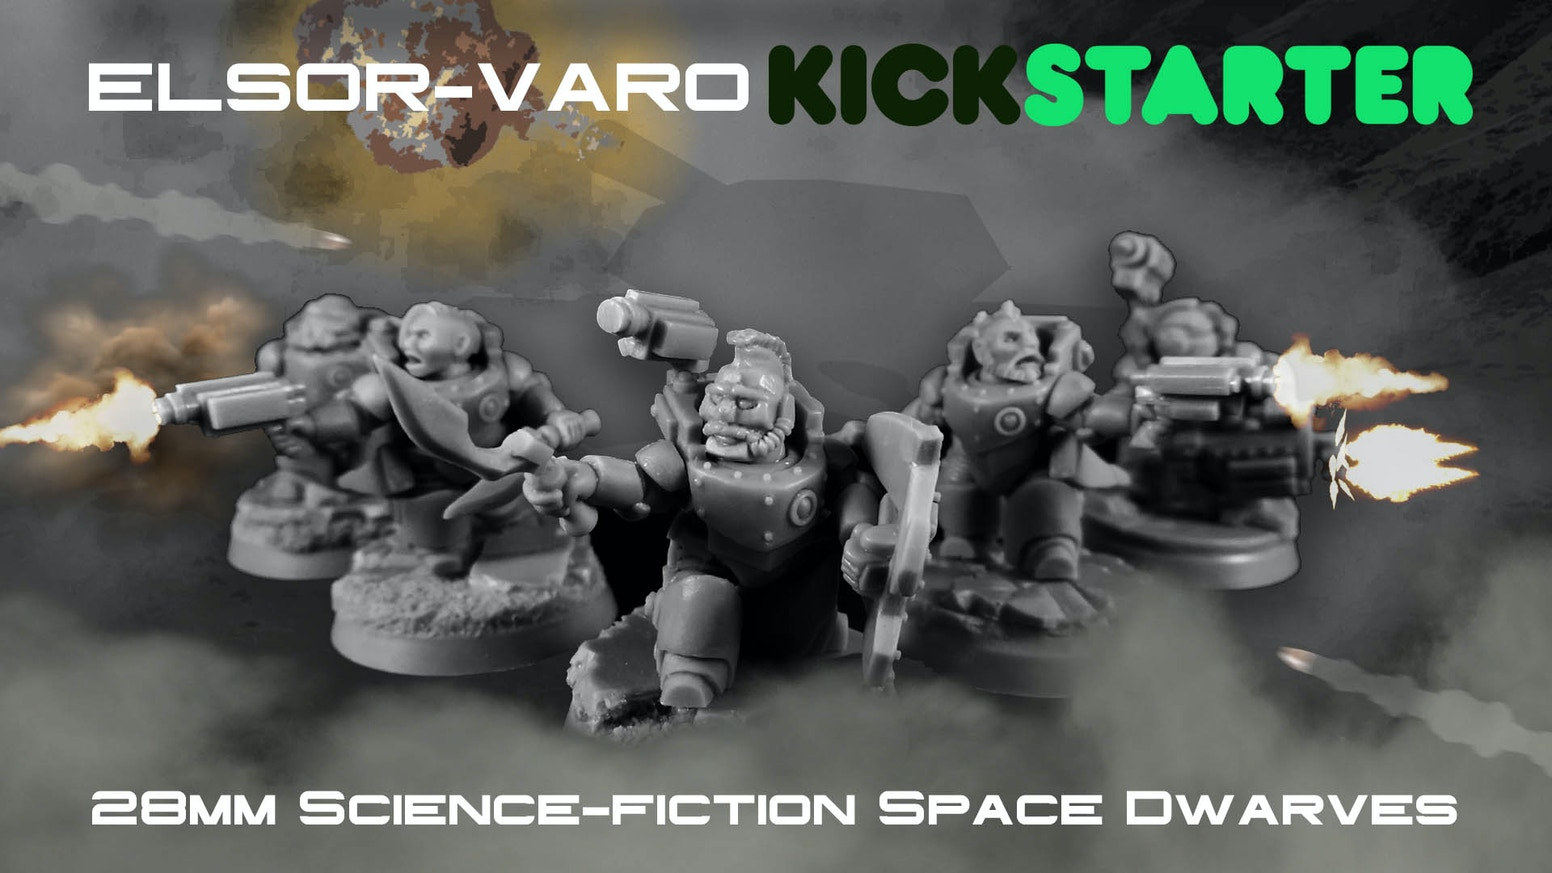 We have a set of 28mm Science Fiction Dwarves in heavy armour that we want to bring to you, our backers.